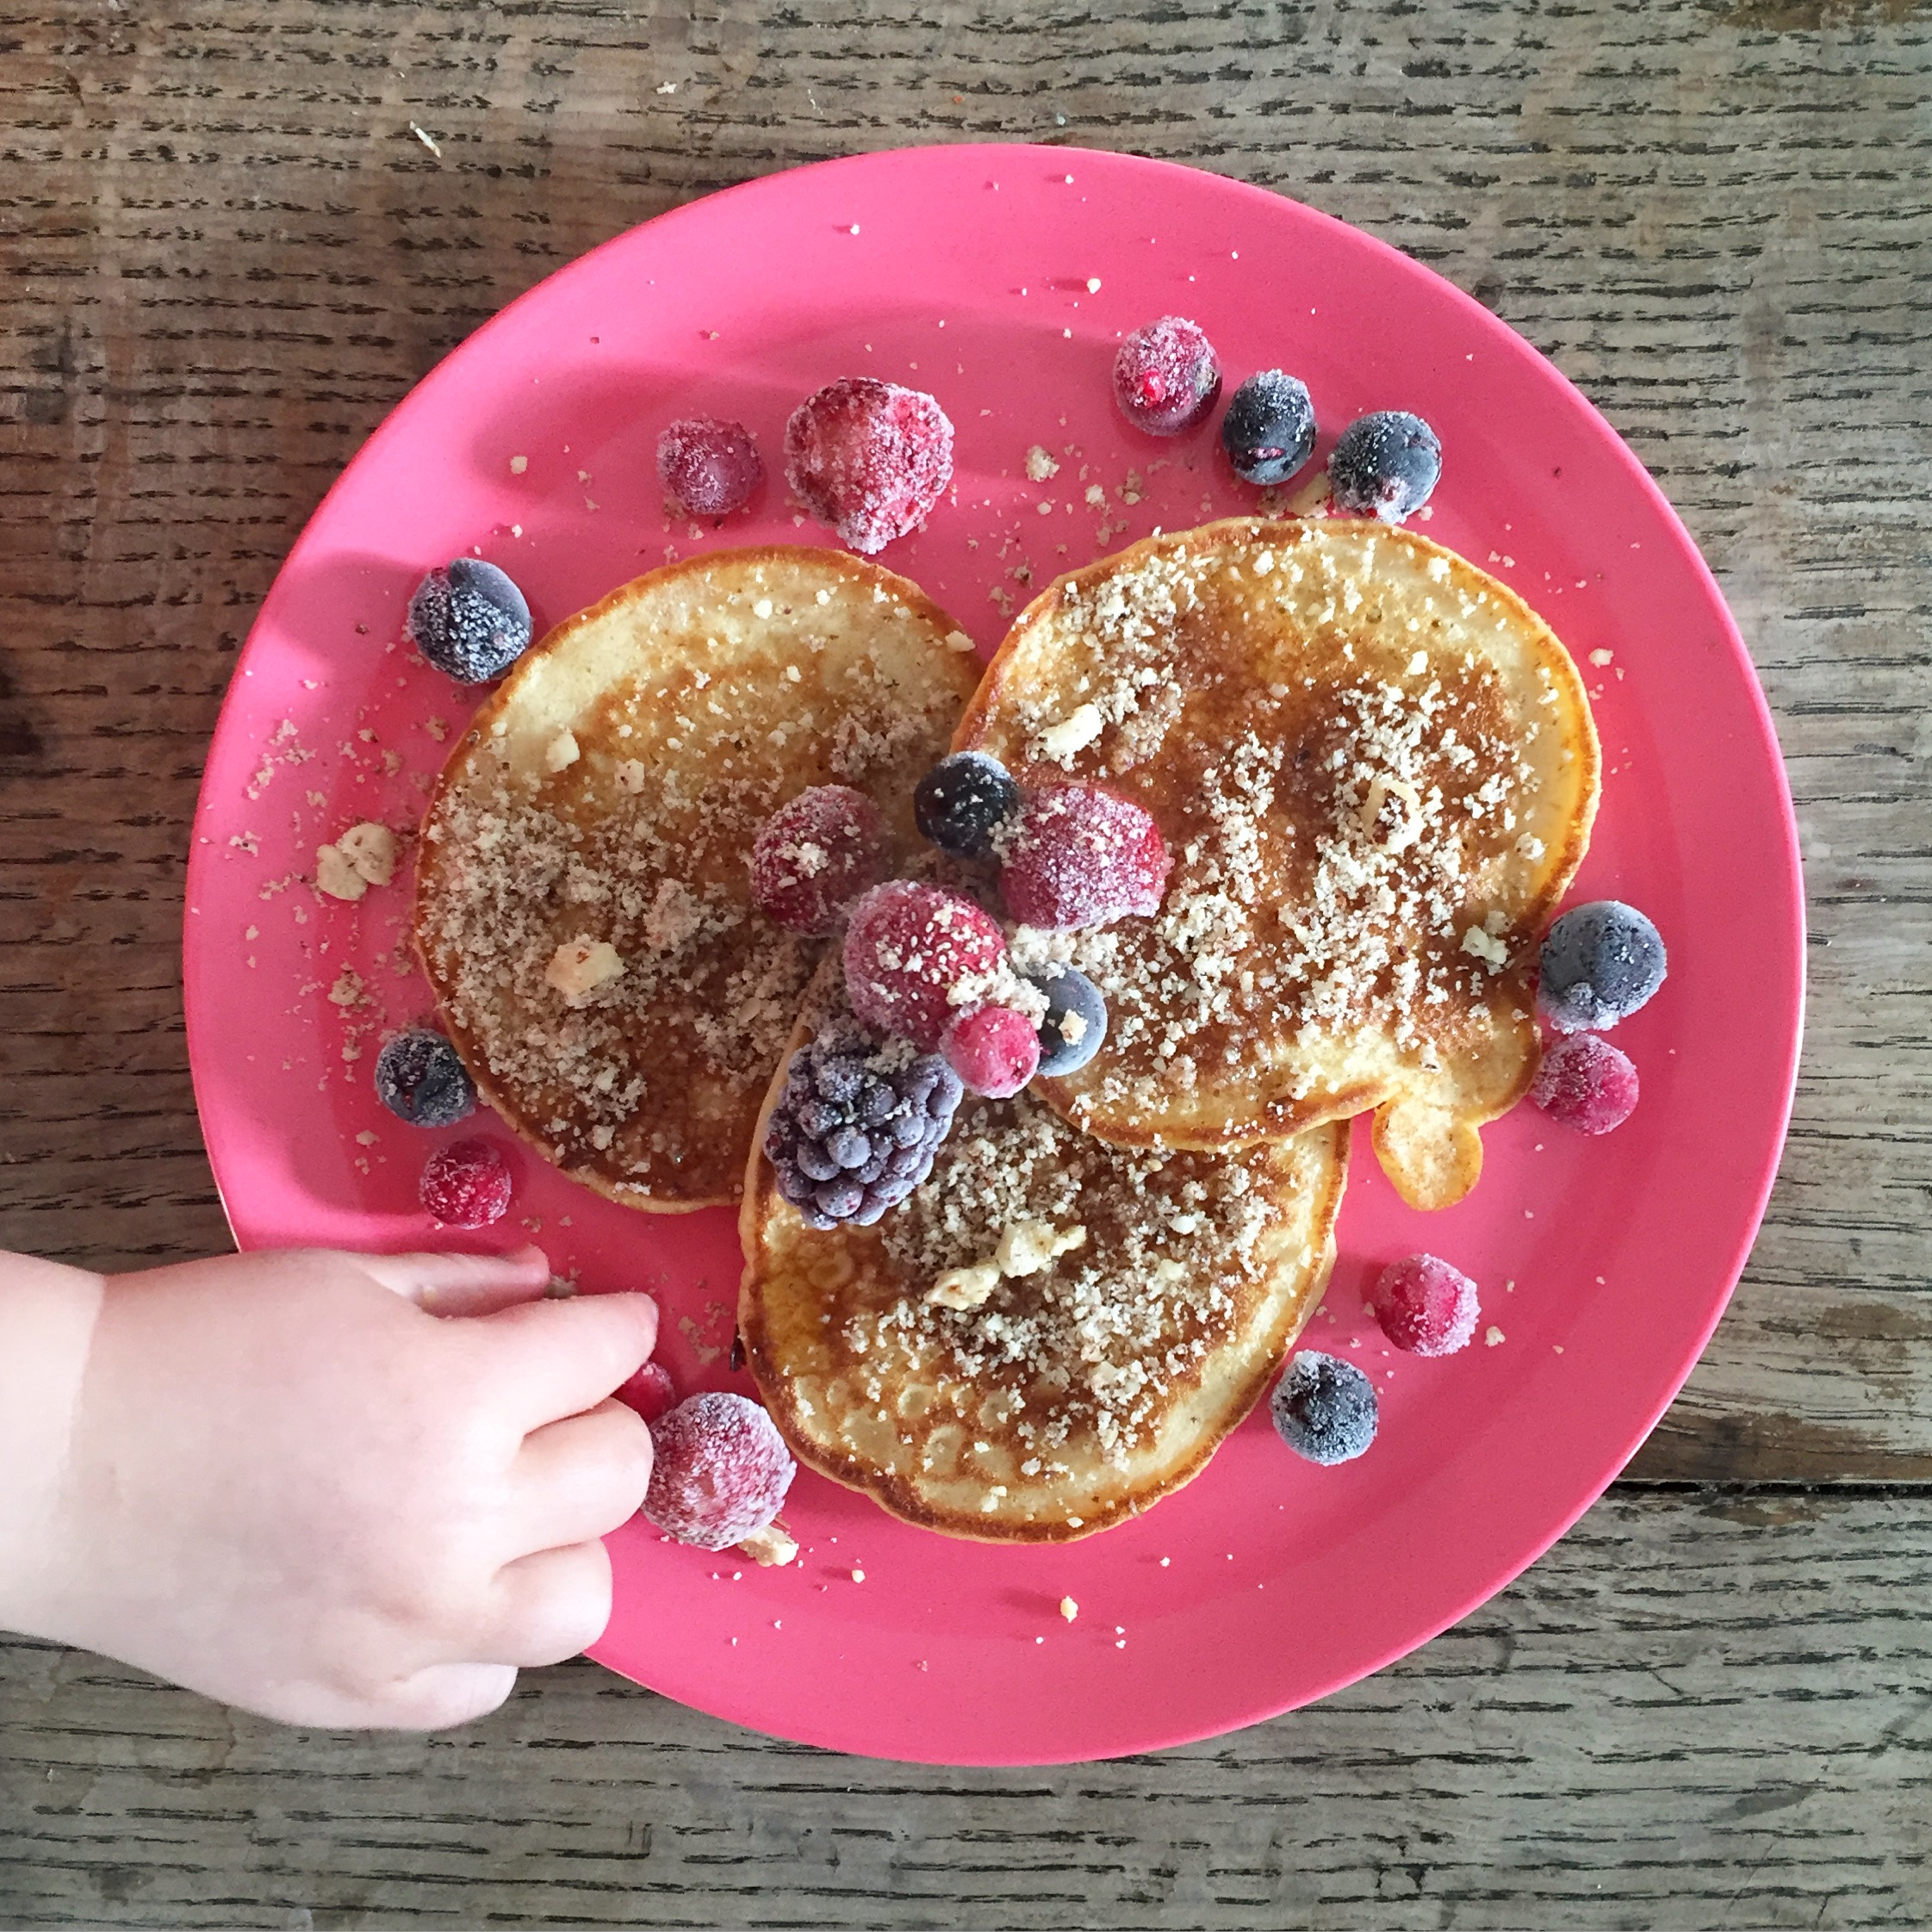 Pancakes..mmmm.  Banana pancakes with frozen berries, hazelnut and pecan dust and a cheeky drizzle of maple syrup